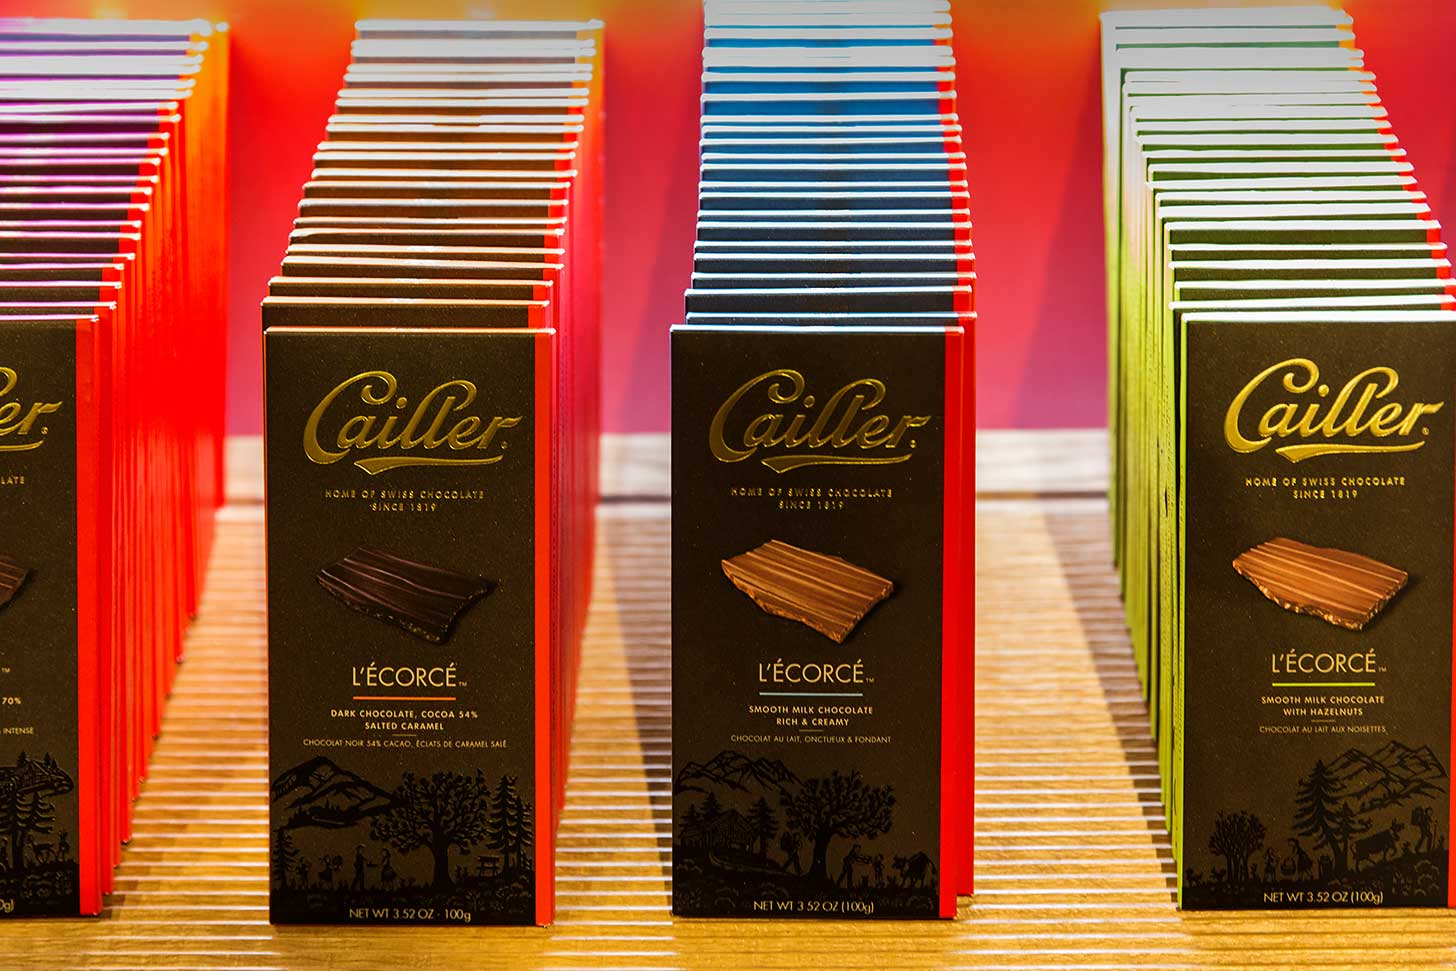 maison-cailler-chocolate-nyc-pop-up-store